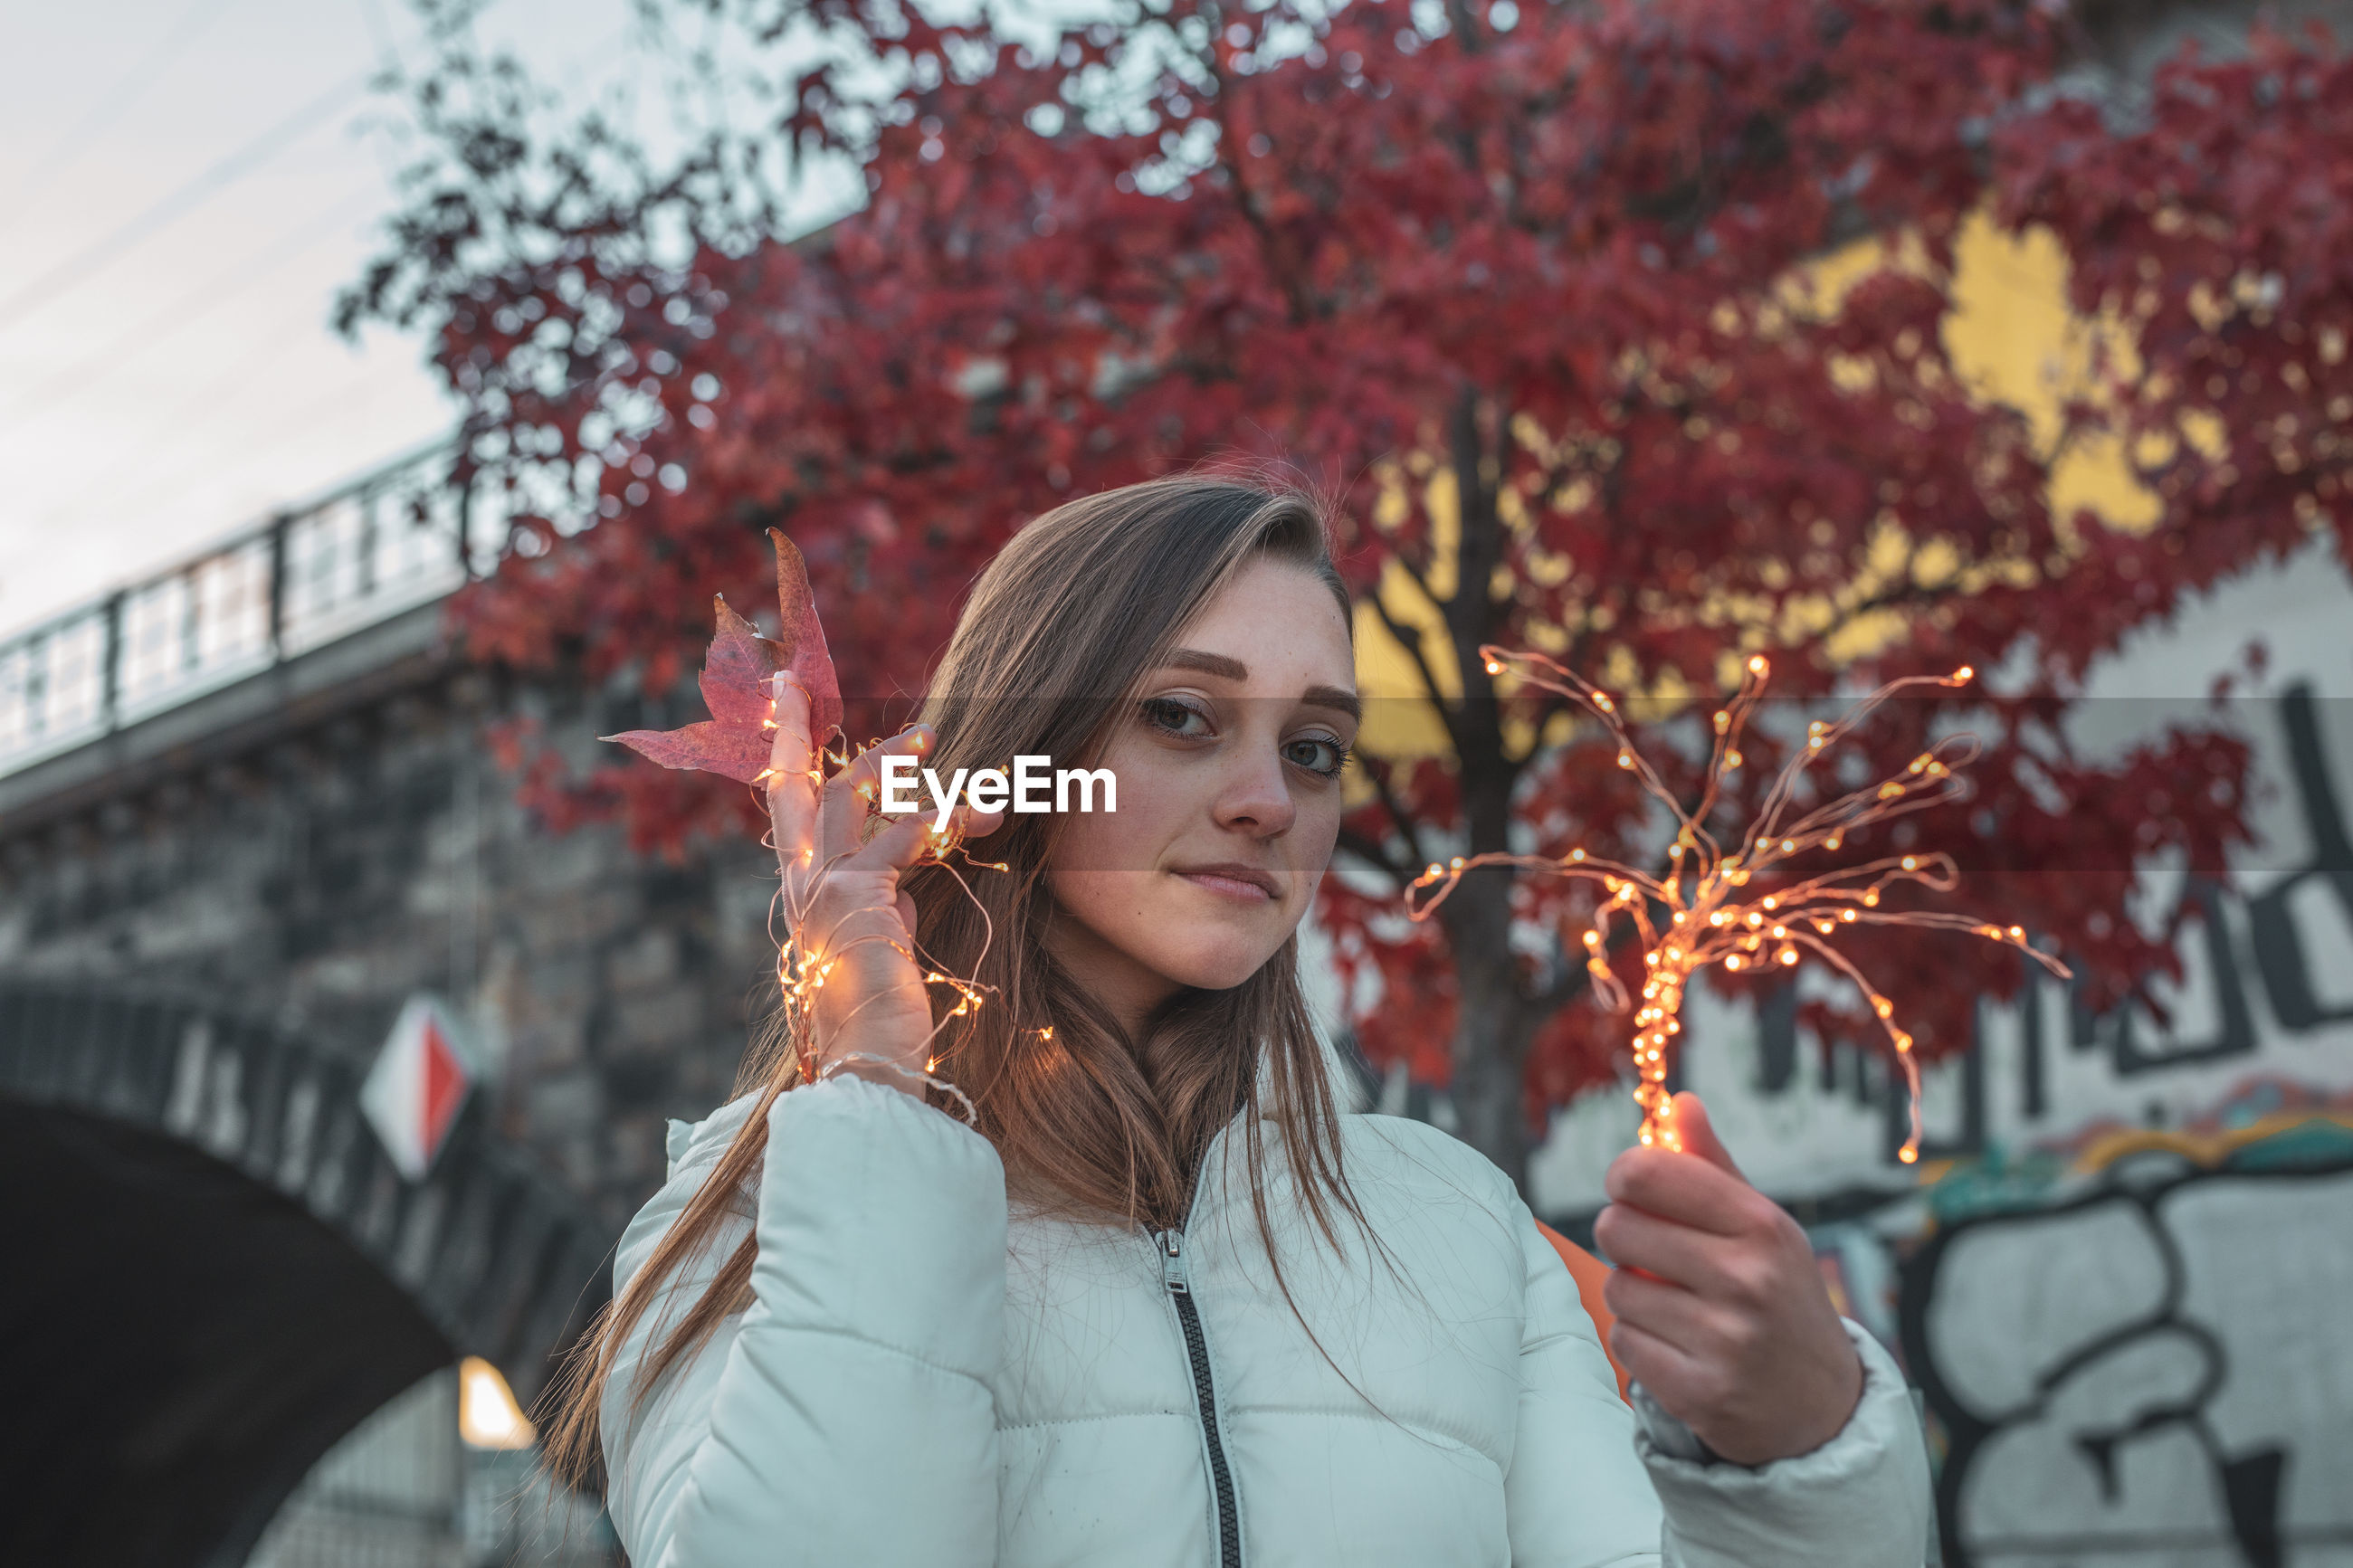 Portrait of young woman holding illuminated lighting equipment against tree during autumn